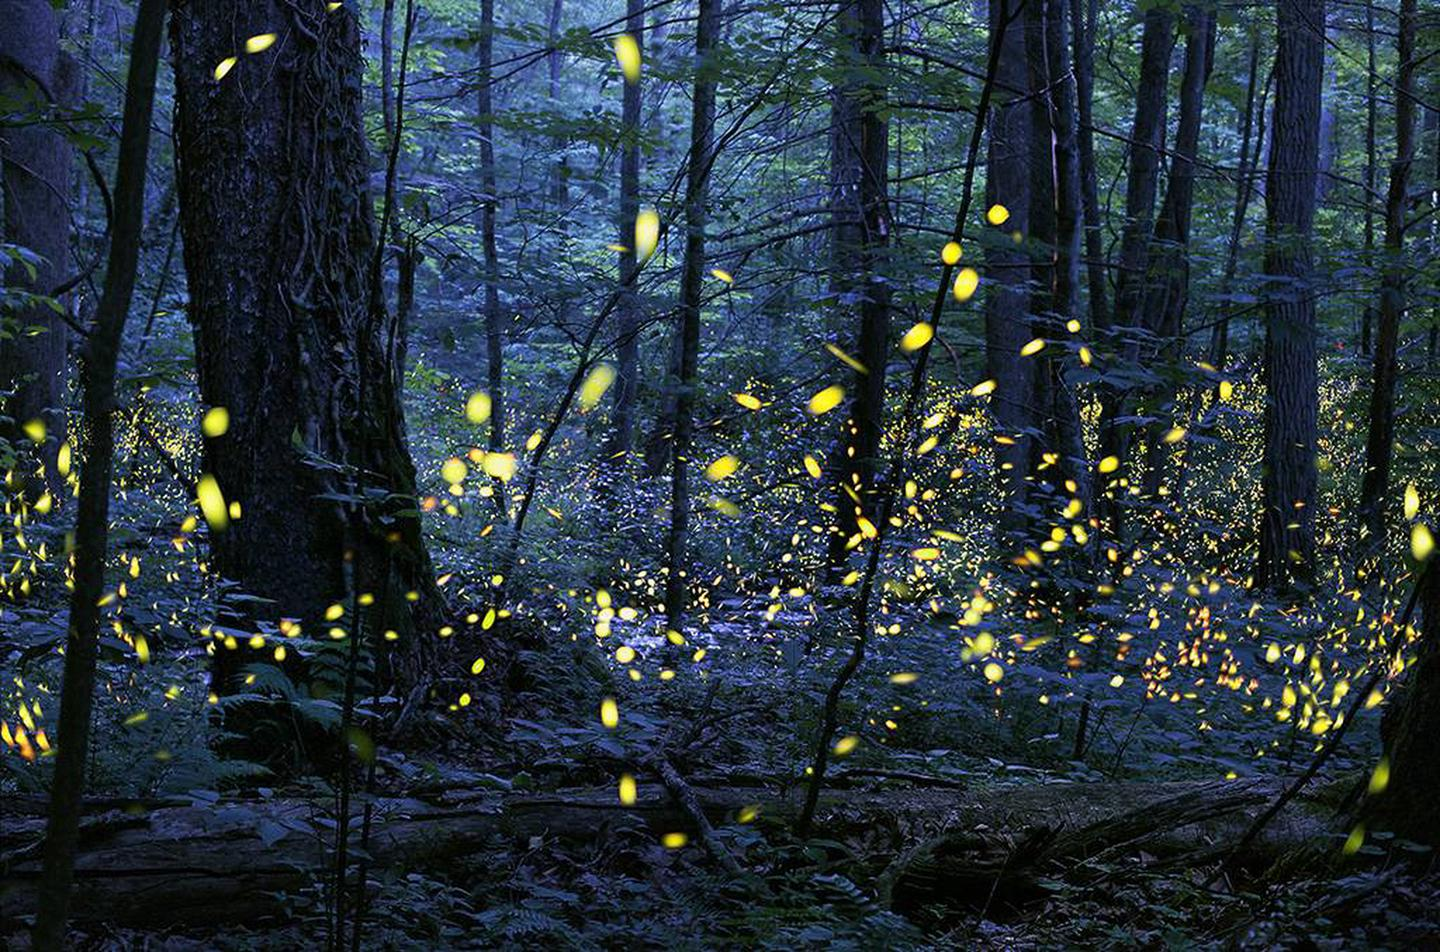 """Firefly eventThe production of light by living organisms is called bioluminescence. Fireflies are a good example of an organism that bioluminesces, but there are others as well, such as certain species of fungus, fish, shrimp, jellyfish, plankton, glowworms, gnats, snails, and springtails.  Bioluminescence involves highly efficient chemical reactions that result in the release of particles of light with little or no emission of heat. Fireflies combine the chemical luciferin and oxygen with the enzyme luciferase in their lanterns (part of their abdomens) to make light. The light produced is referred to as a """"cold"""" light, with nearly 100% of the energy given off as light. In contrast, the energy produced by an incandescent light bulb is approximately 10% light and 90% heat.  No one is sure why the fireflies flash synchronously. Competition between males may be one reason: they all want to be the first to flash. Or perhaps if the males all flash together they have a better chance of being noticed, and the females can make better comparisons."""